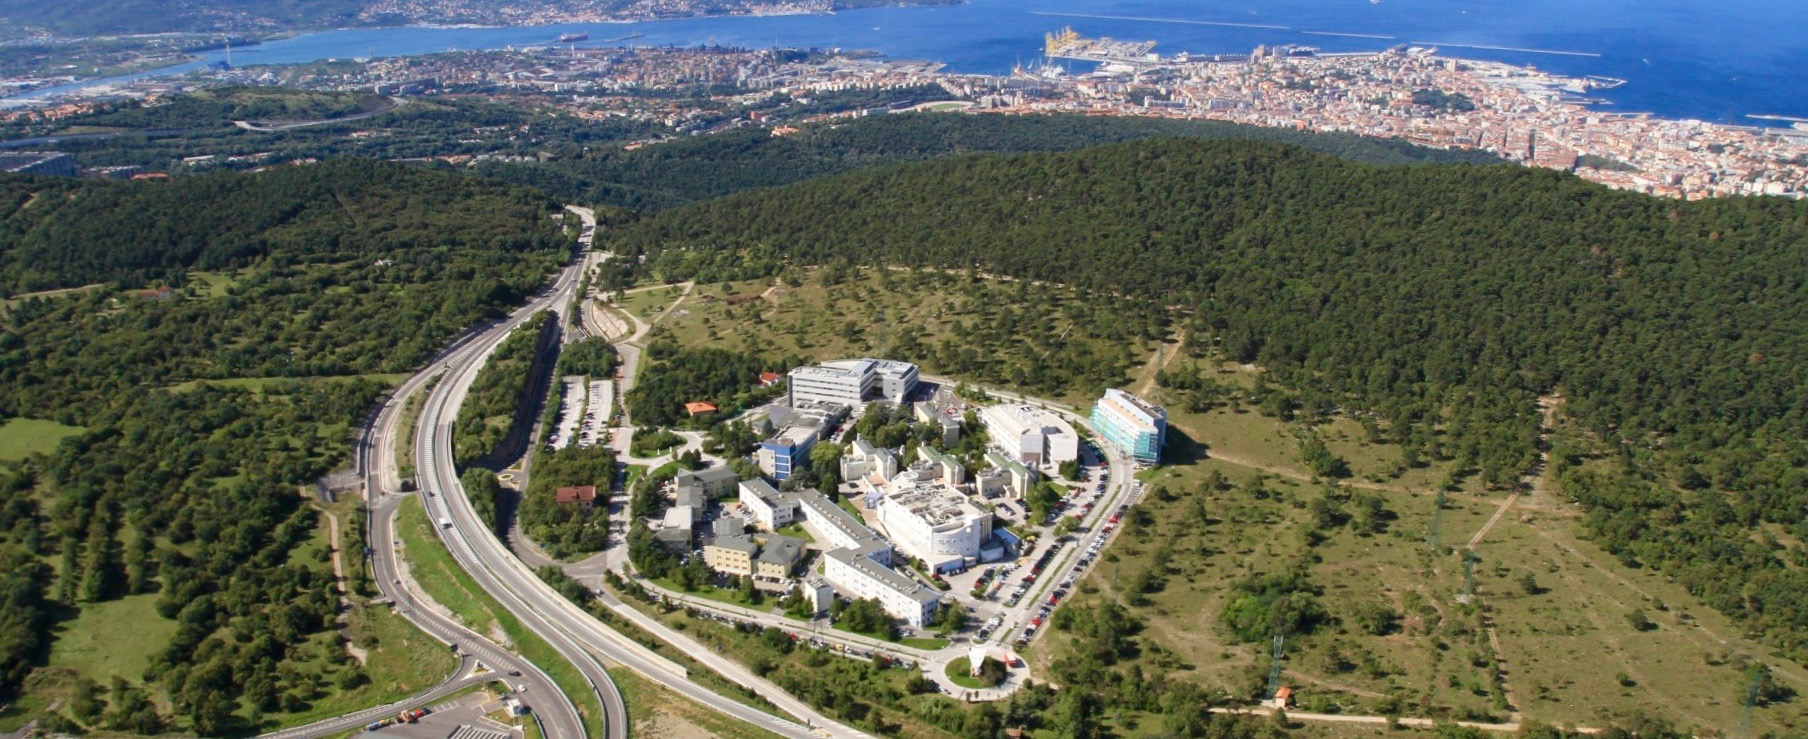 Area Scienze Park presenta Freeway Trieste al congresso della World Trade Centers Association